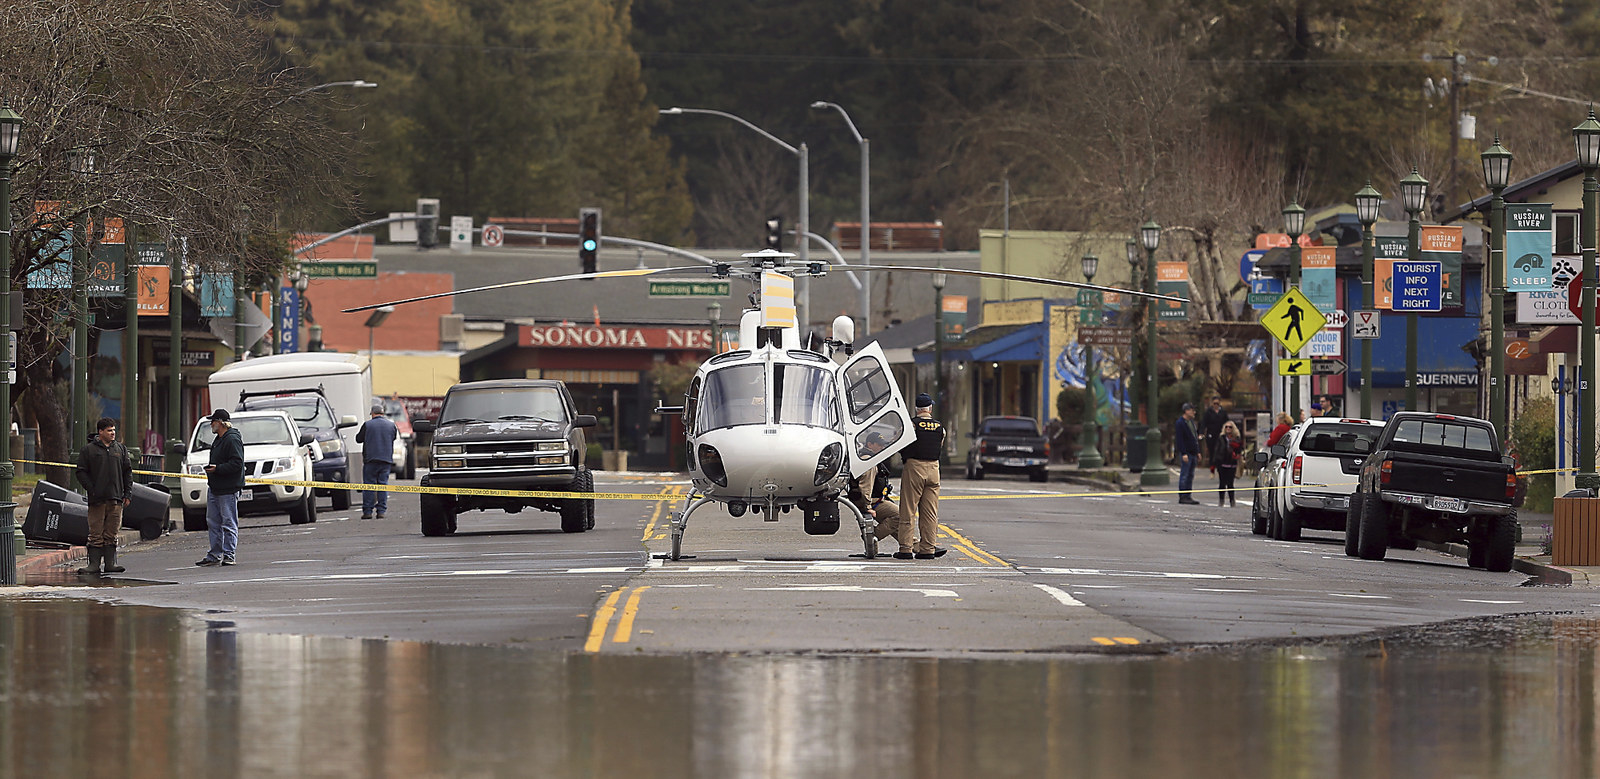 A police helicopter uses Main Street in Guerneville, Calif. as a landing pad as water continues to rise.